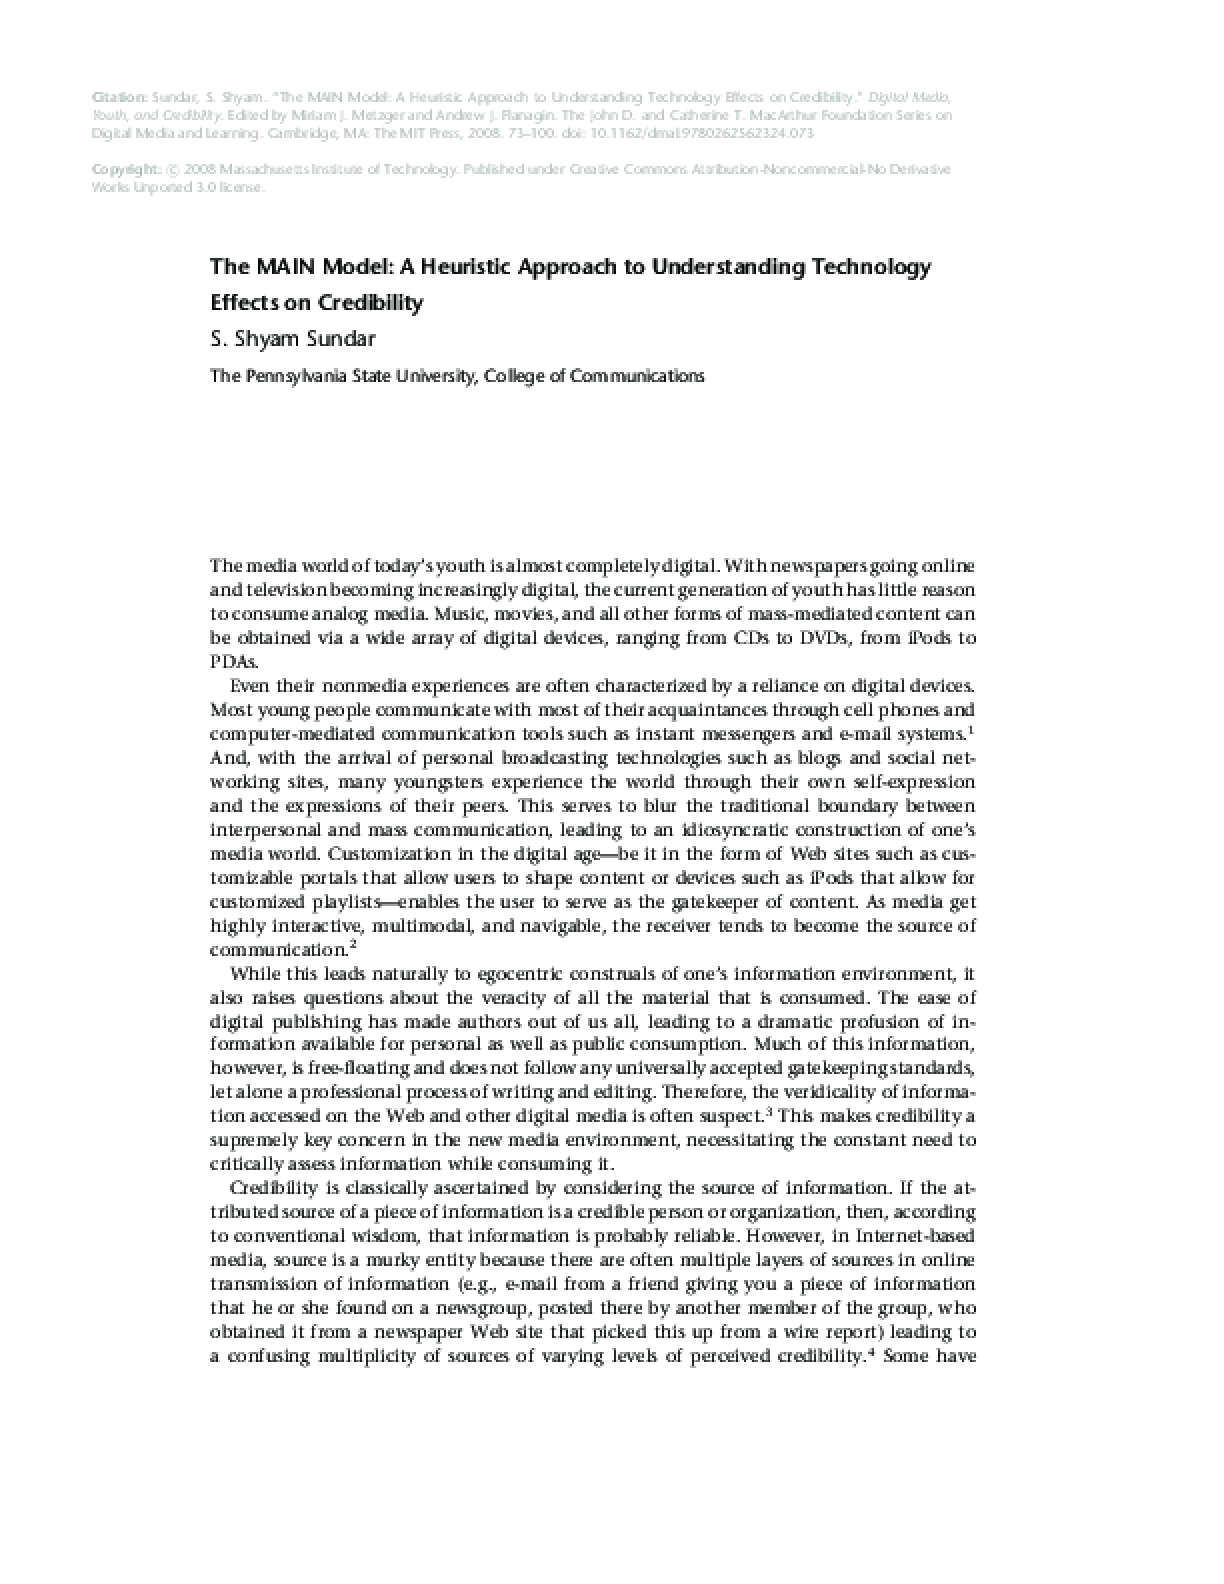 The MAIN Model: A Heuristic Approach to Understanding Technology Effects on Credibility